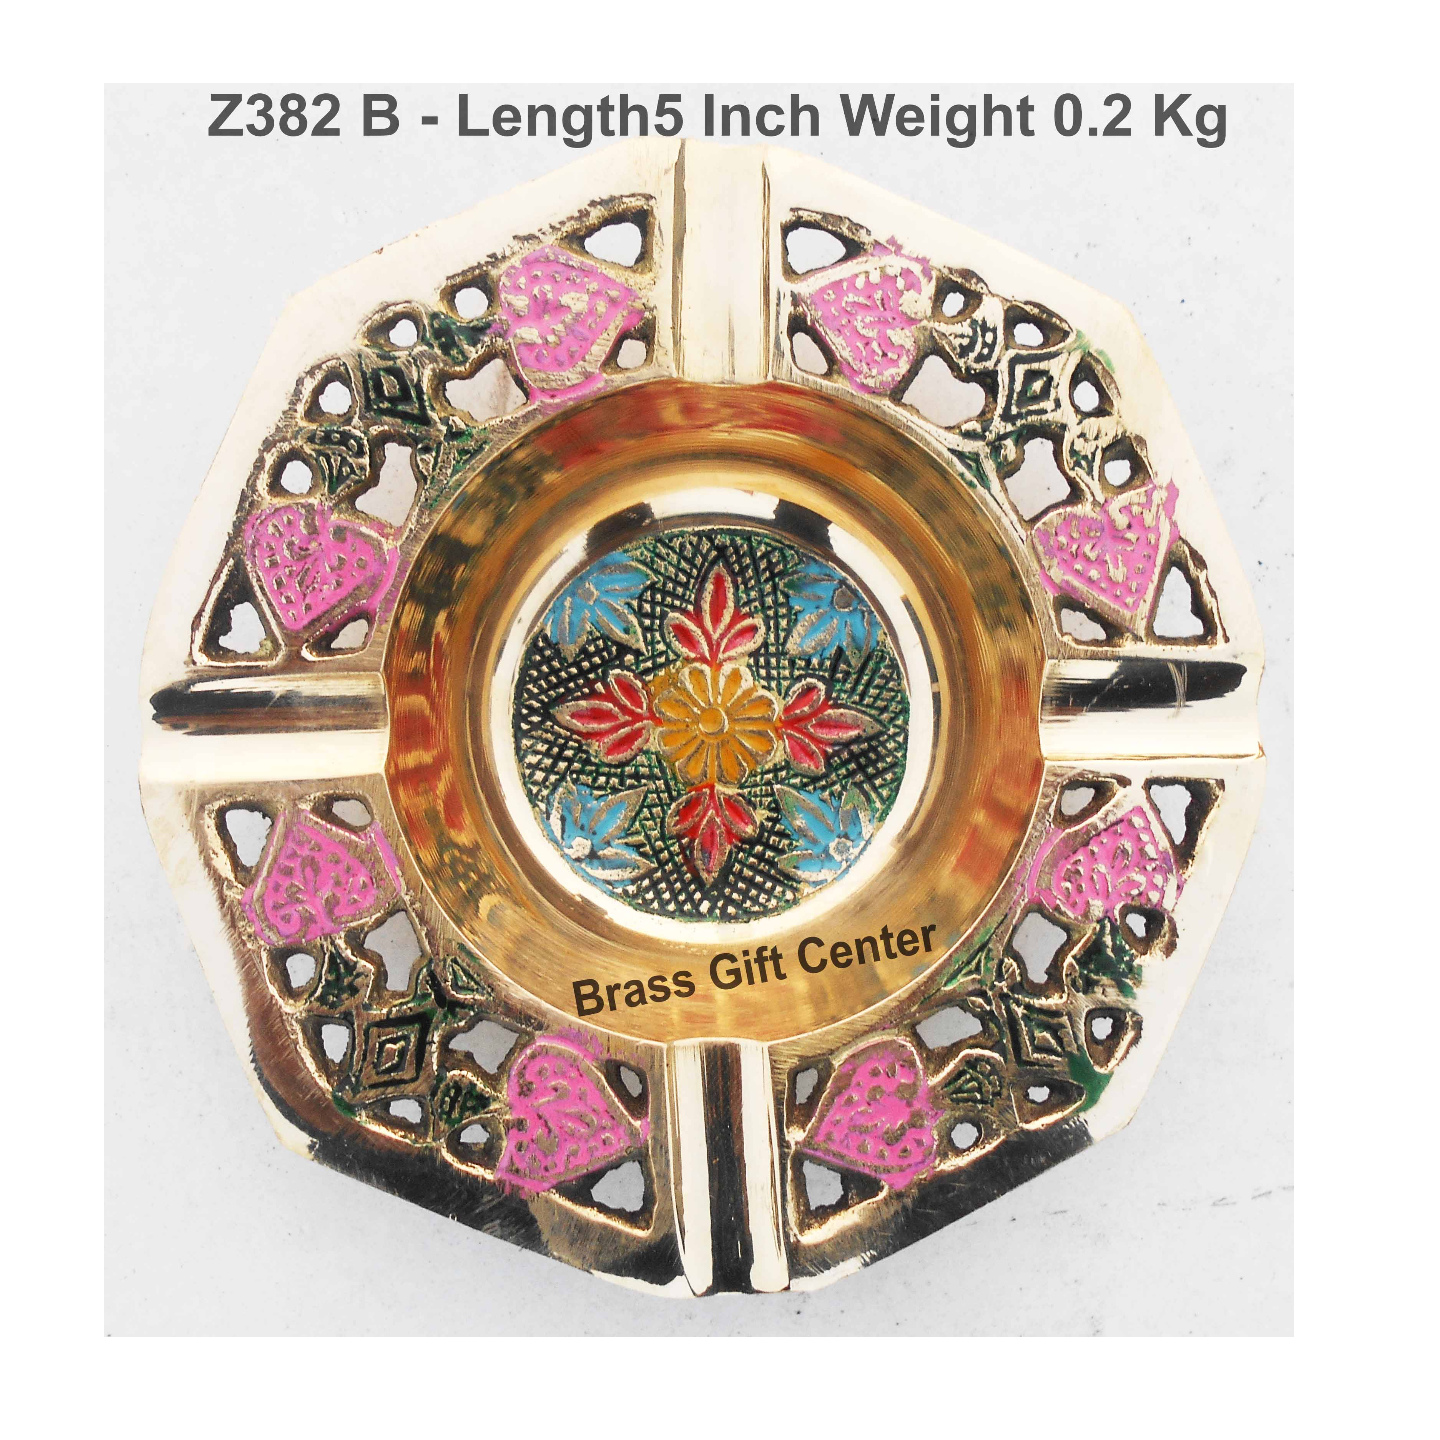 Brass Ash Tray With Multicloured Finsih -  5 Inch (Z382 B)